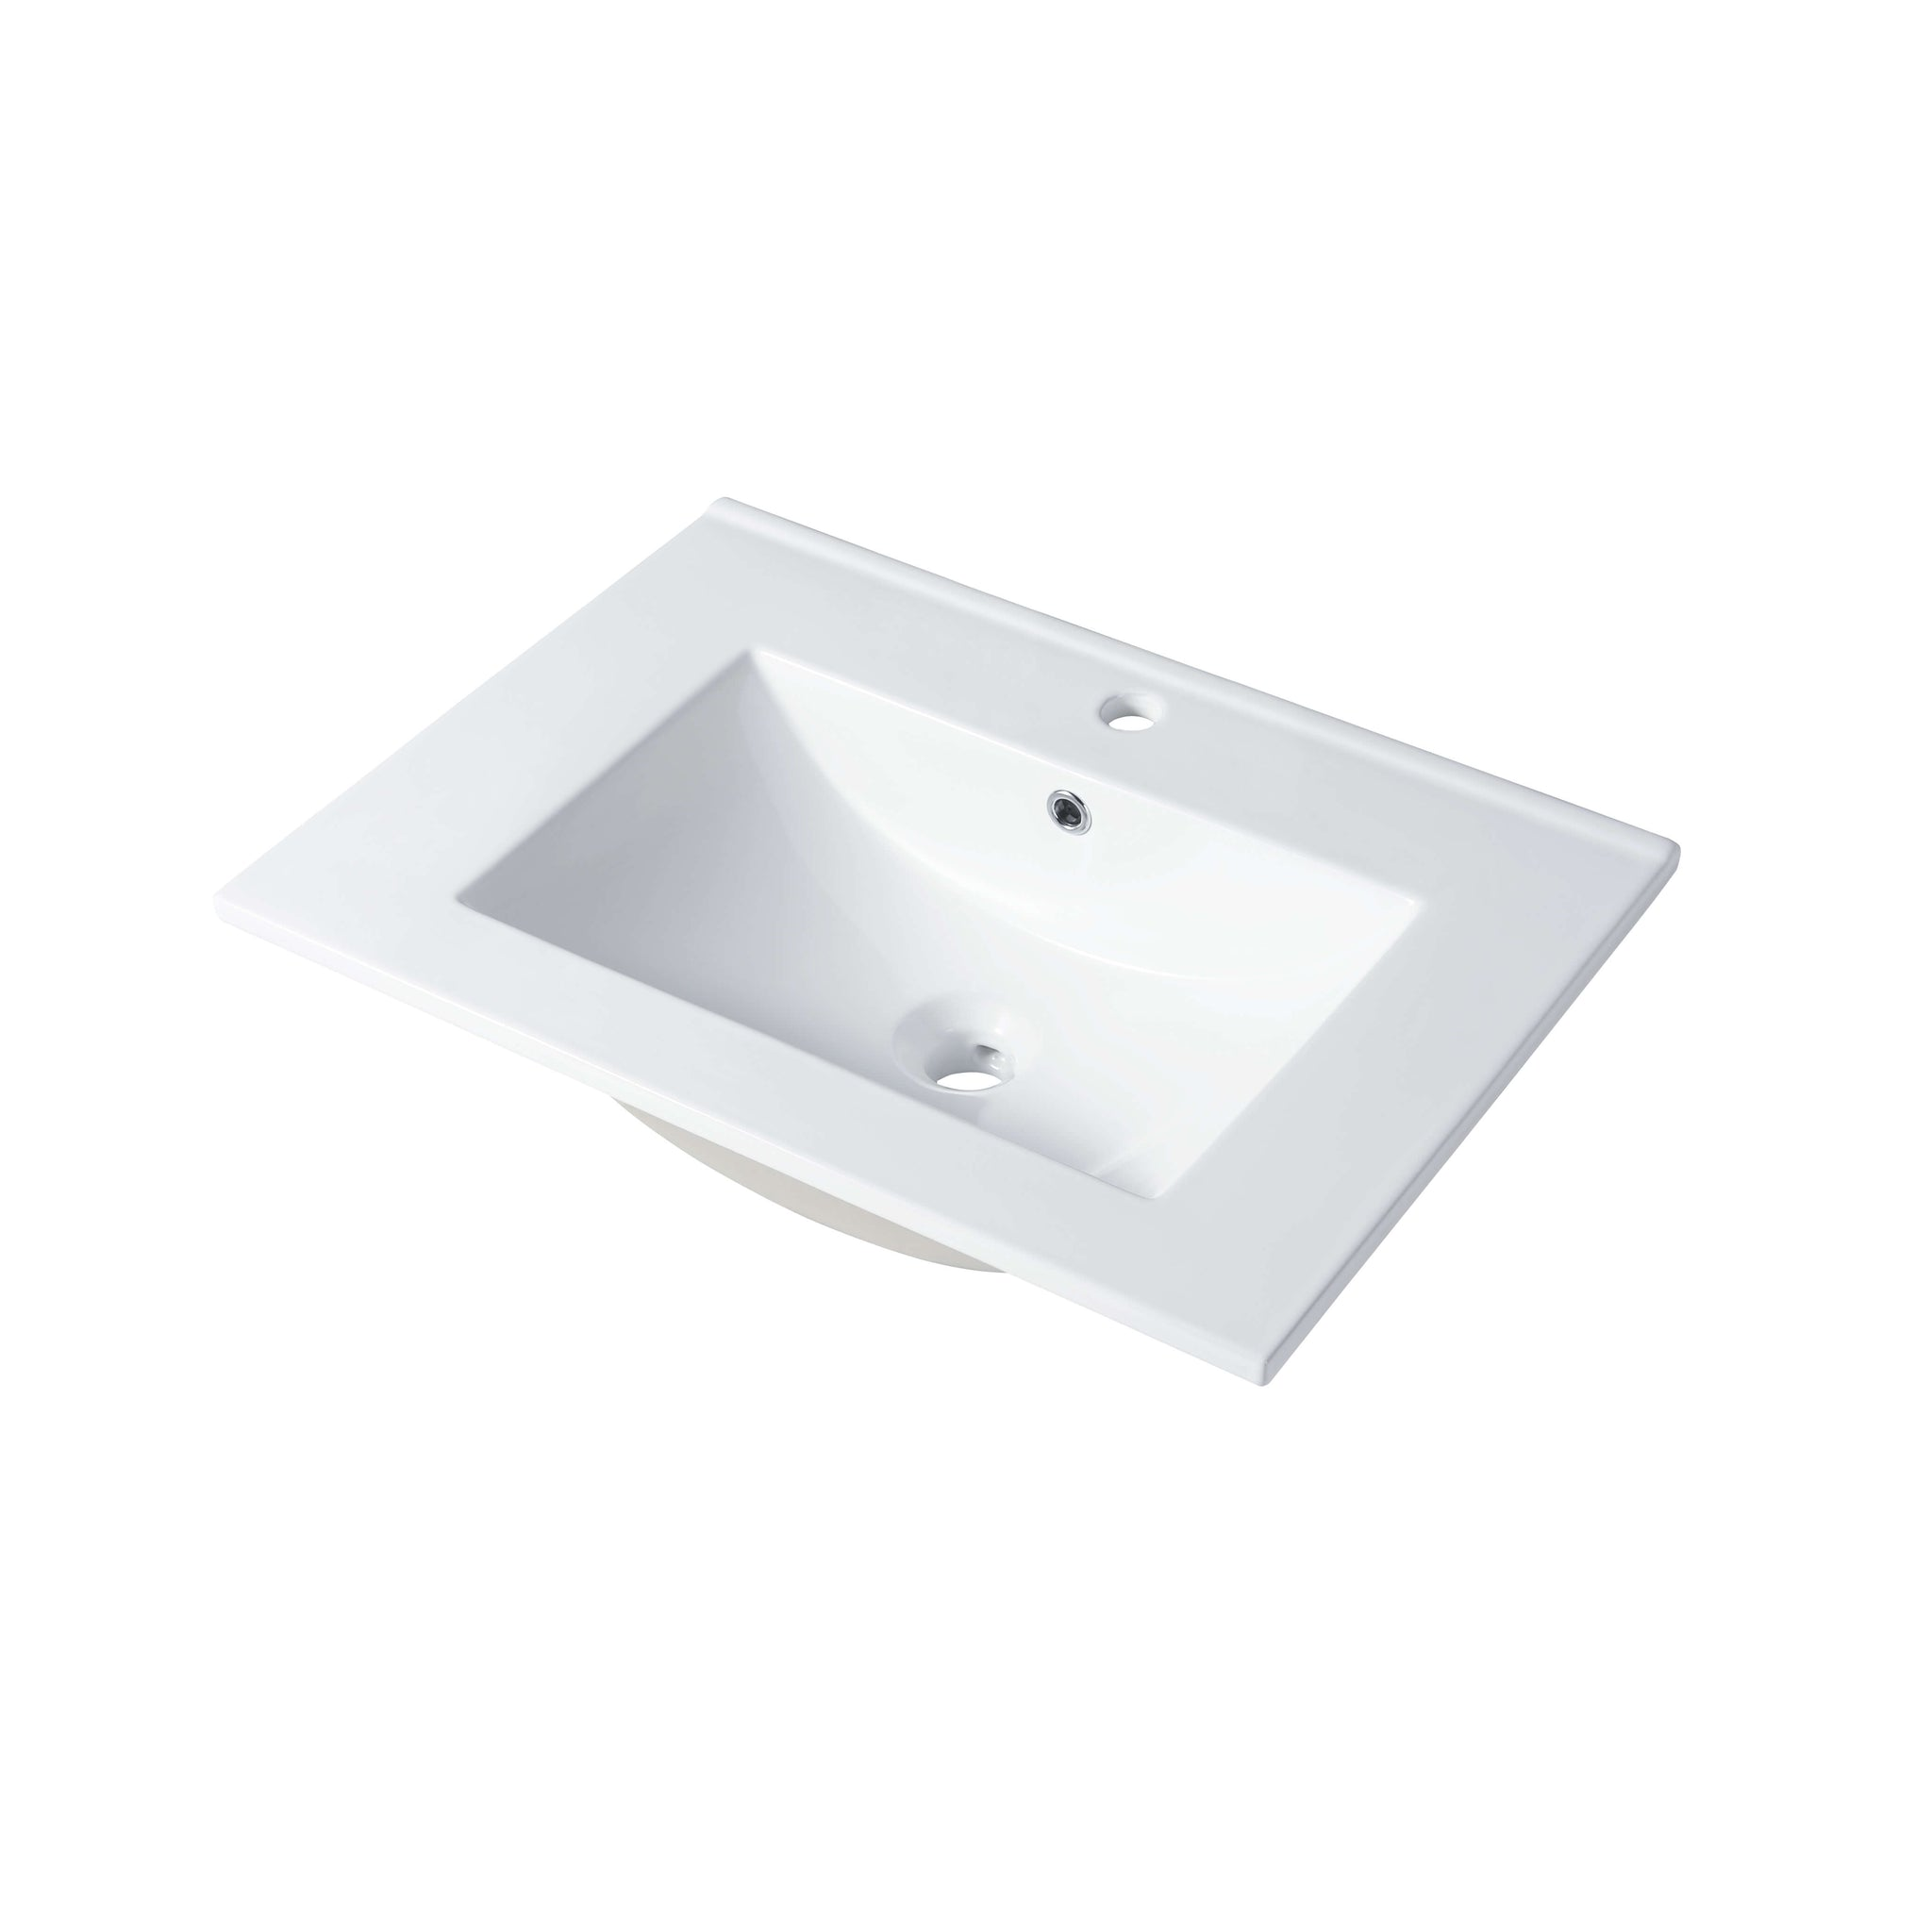 Ceramic Basin 24″ X 18″ Top-Mount Rectangular